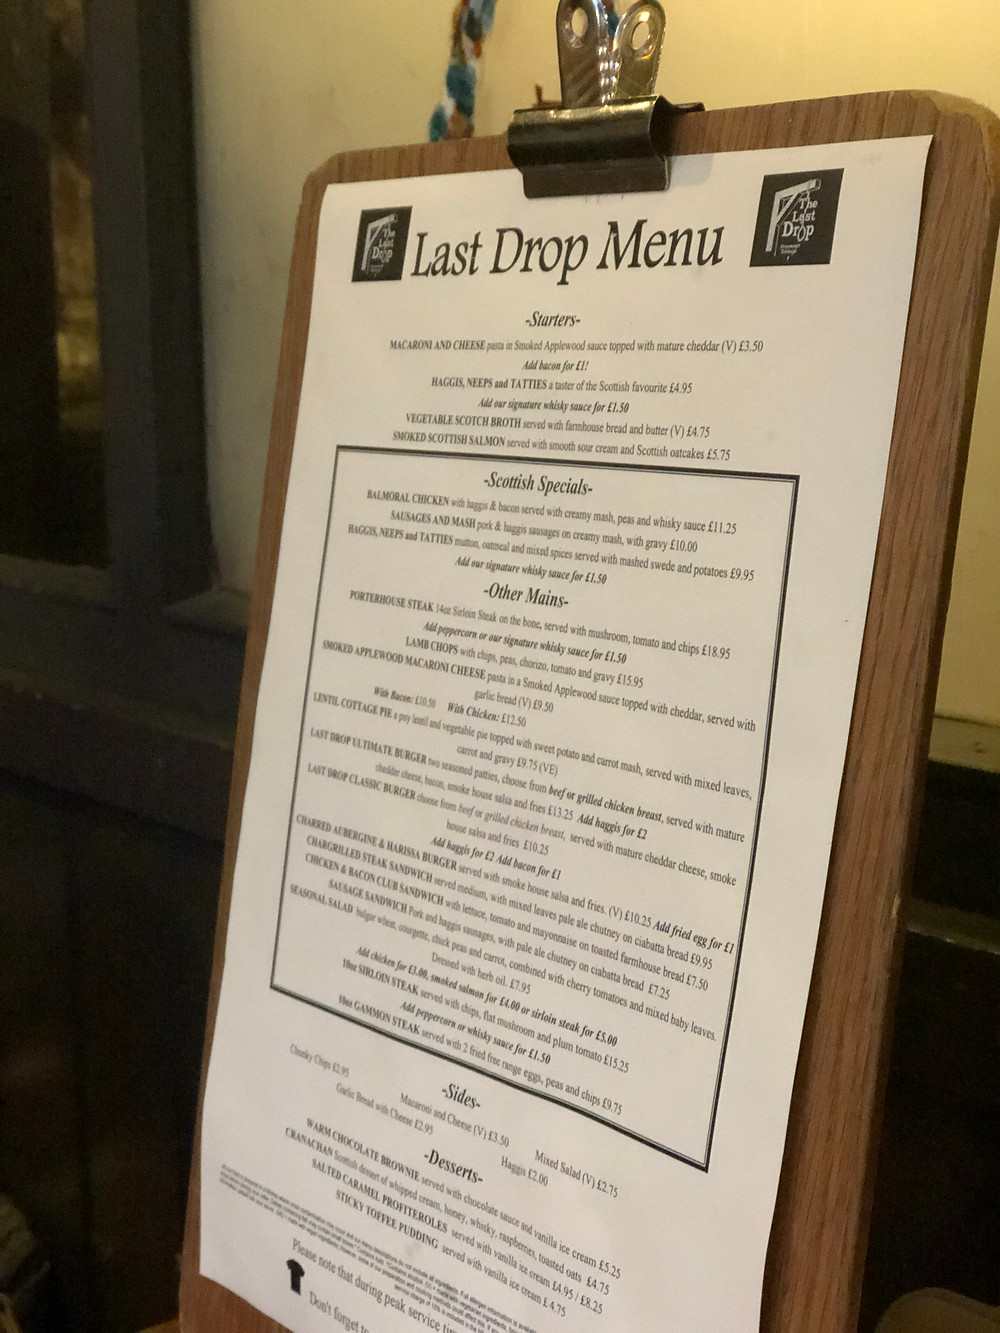 The Last Drop Menu in Edinburgh, Scotland